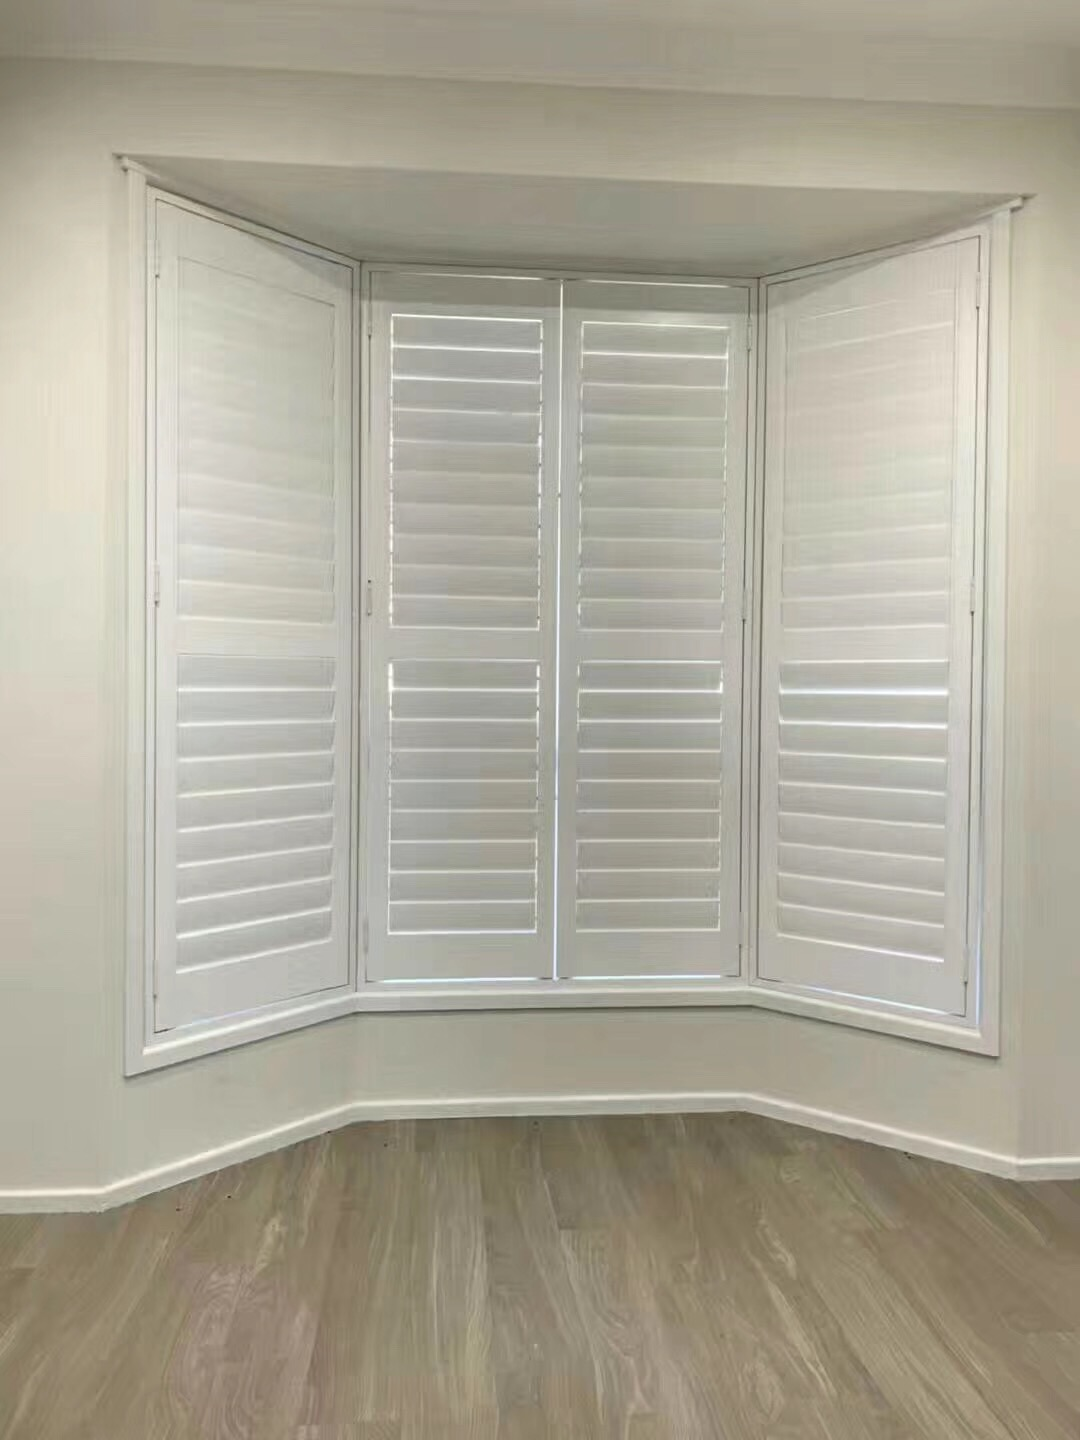 Hot Item 2019 Bay Window With High Quality Wooden Plantation Shutters